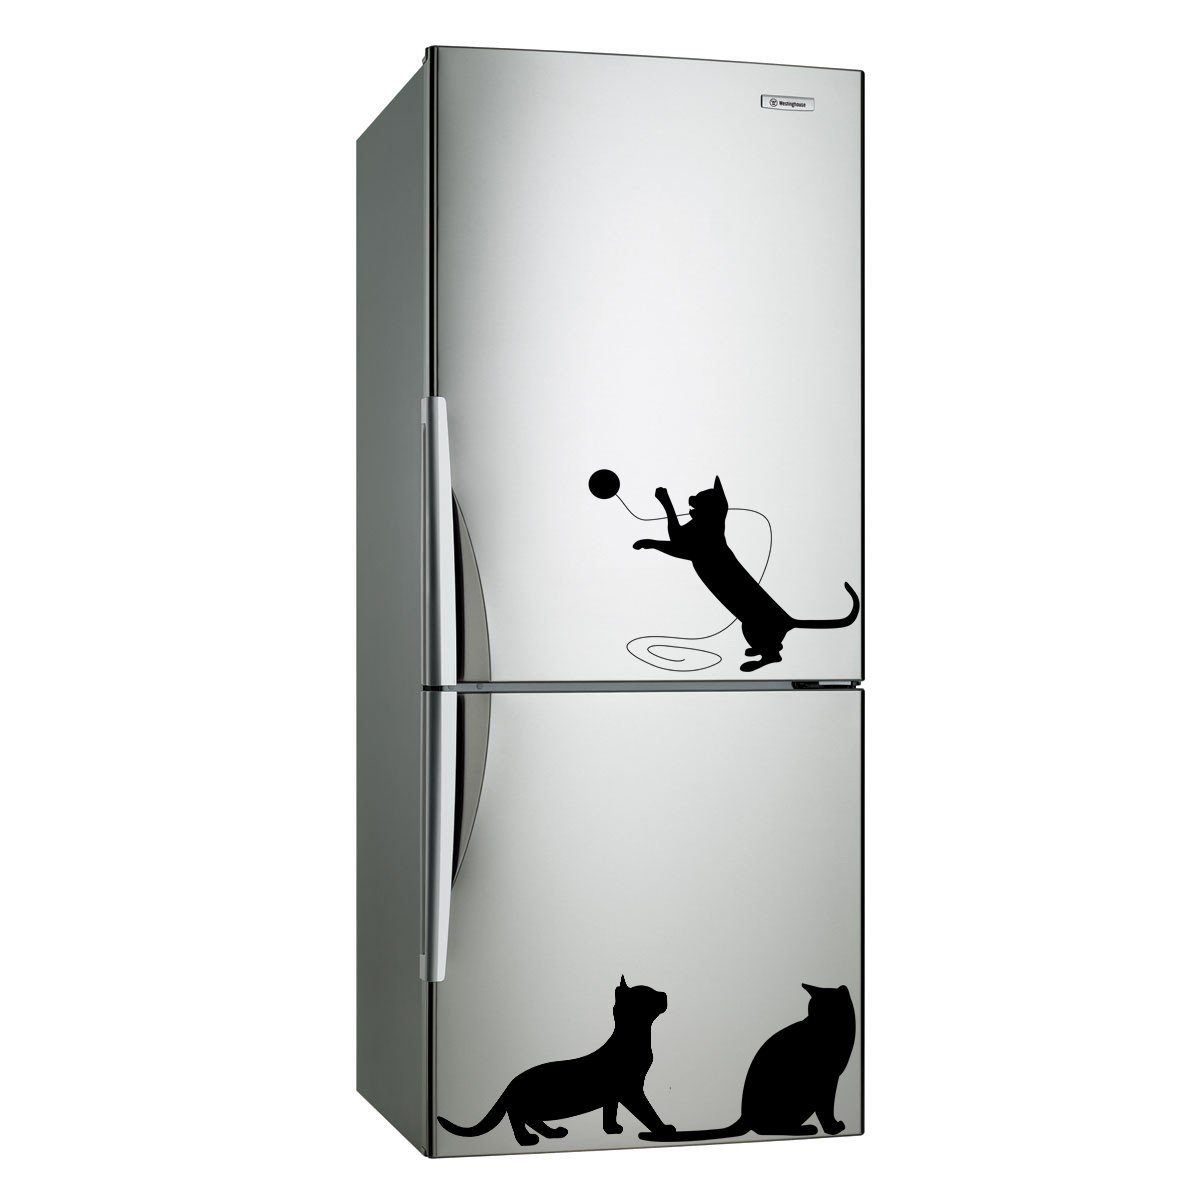 (16''x6'') Vinyl Wall Decal Cute Cats Playing / Happy 3 Kittens Art Decor Sticker + Free Decal Gift